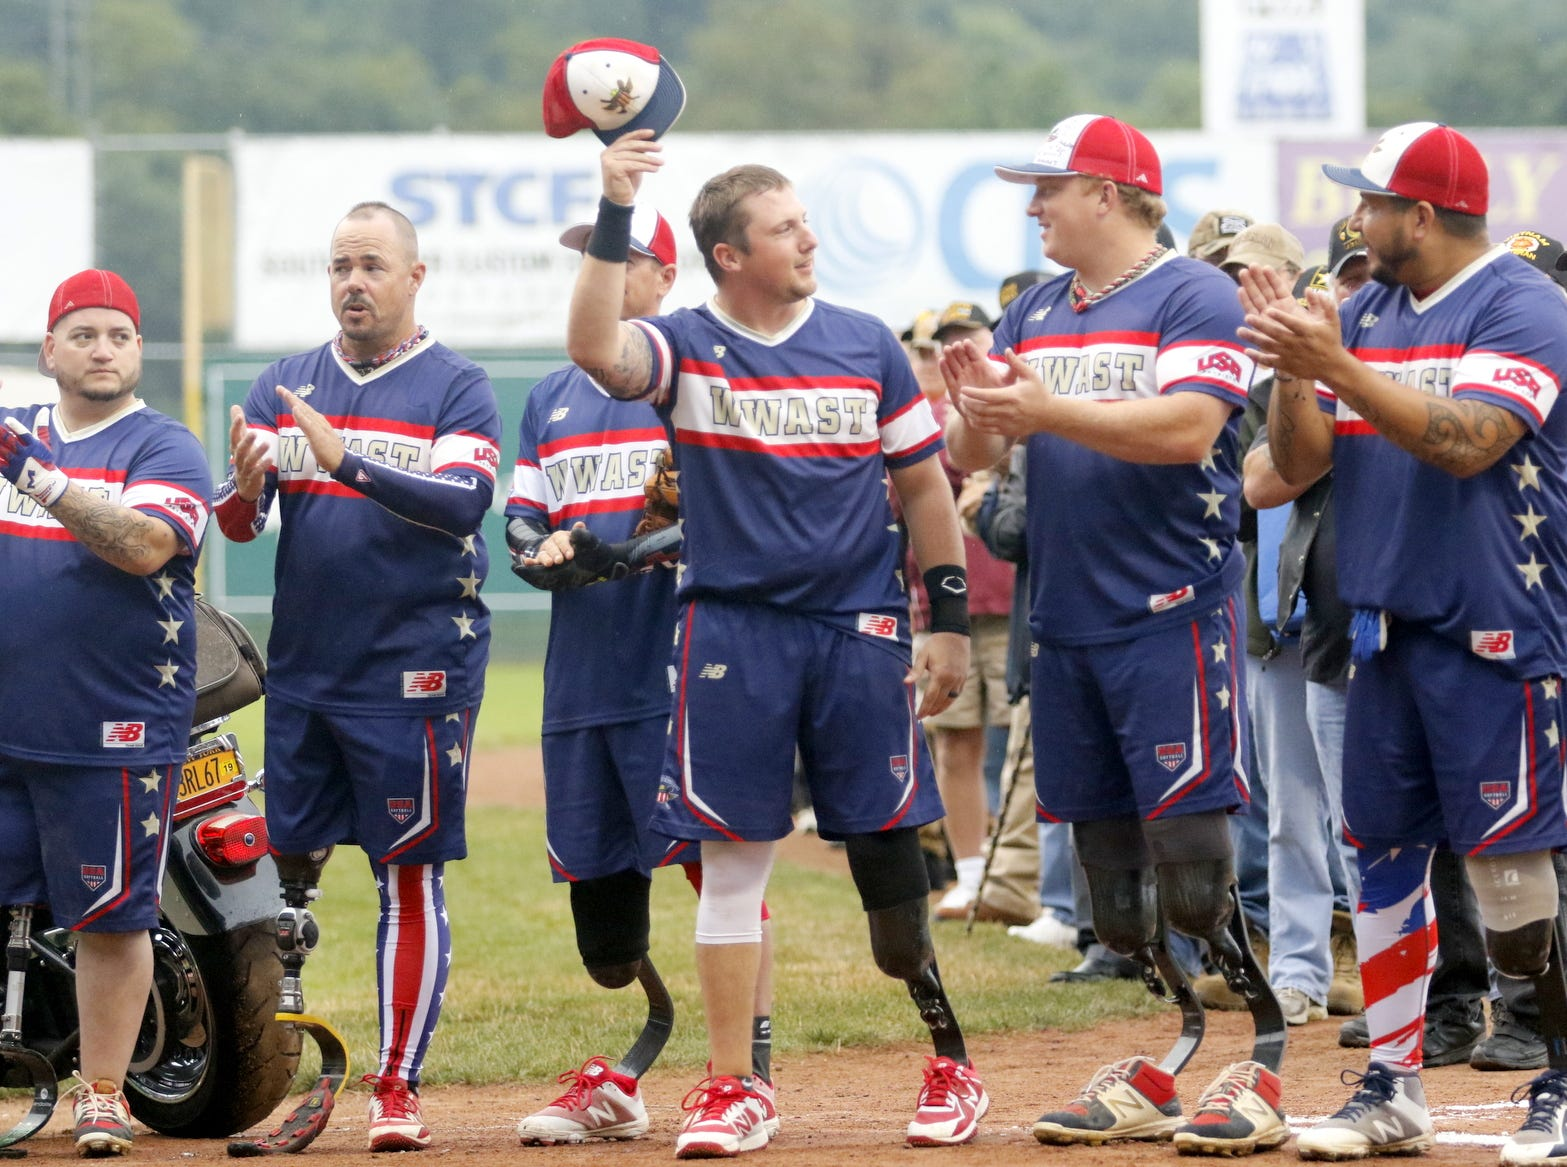 Brent Nadjadi of Bath is introduced for the Wounded Warrior Amputee Softball Team before its game against the Elmira Pioneers on July 21, 2018. WWAST was an 11-5 winner in the seven-inning softball game.